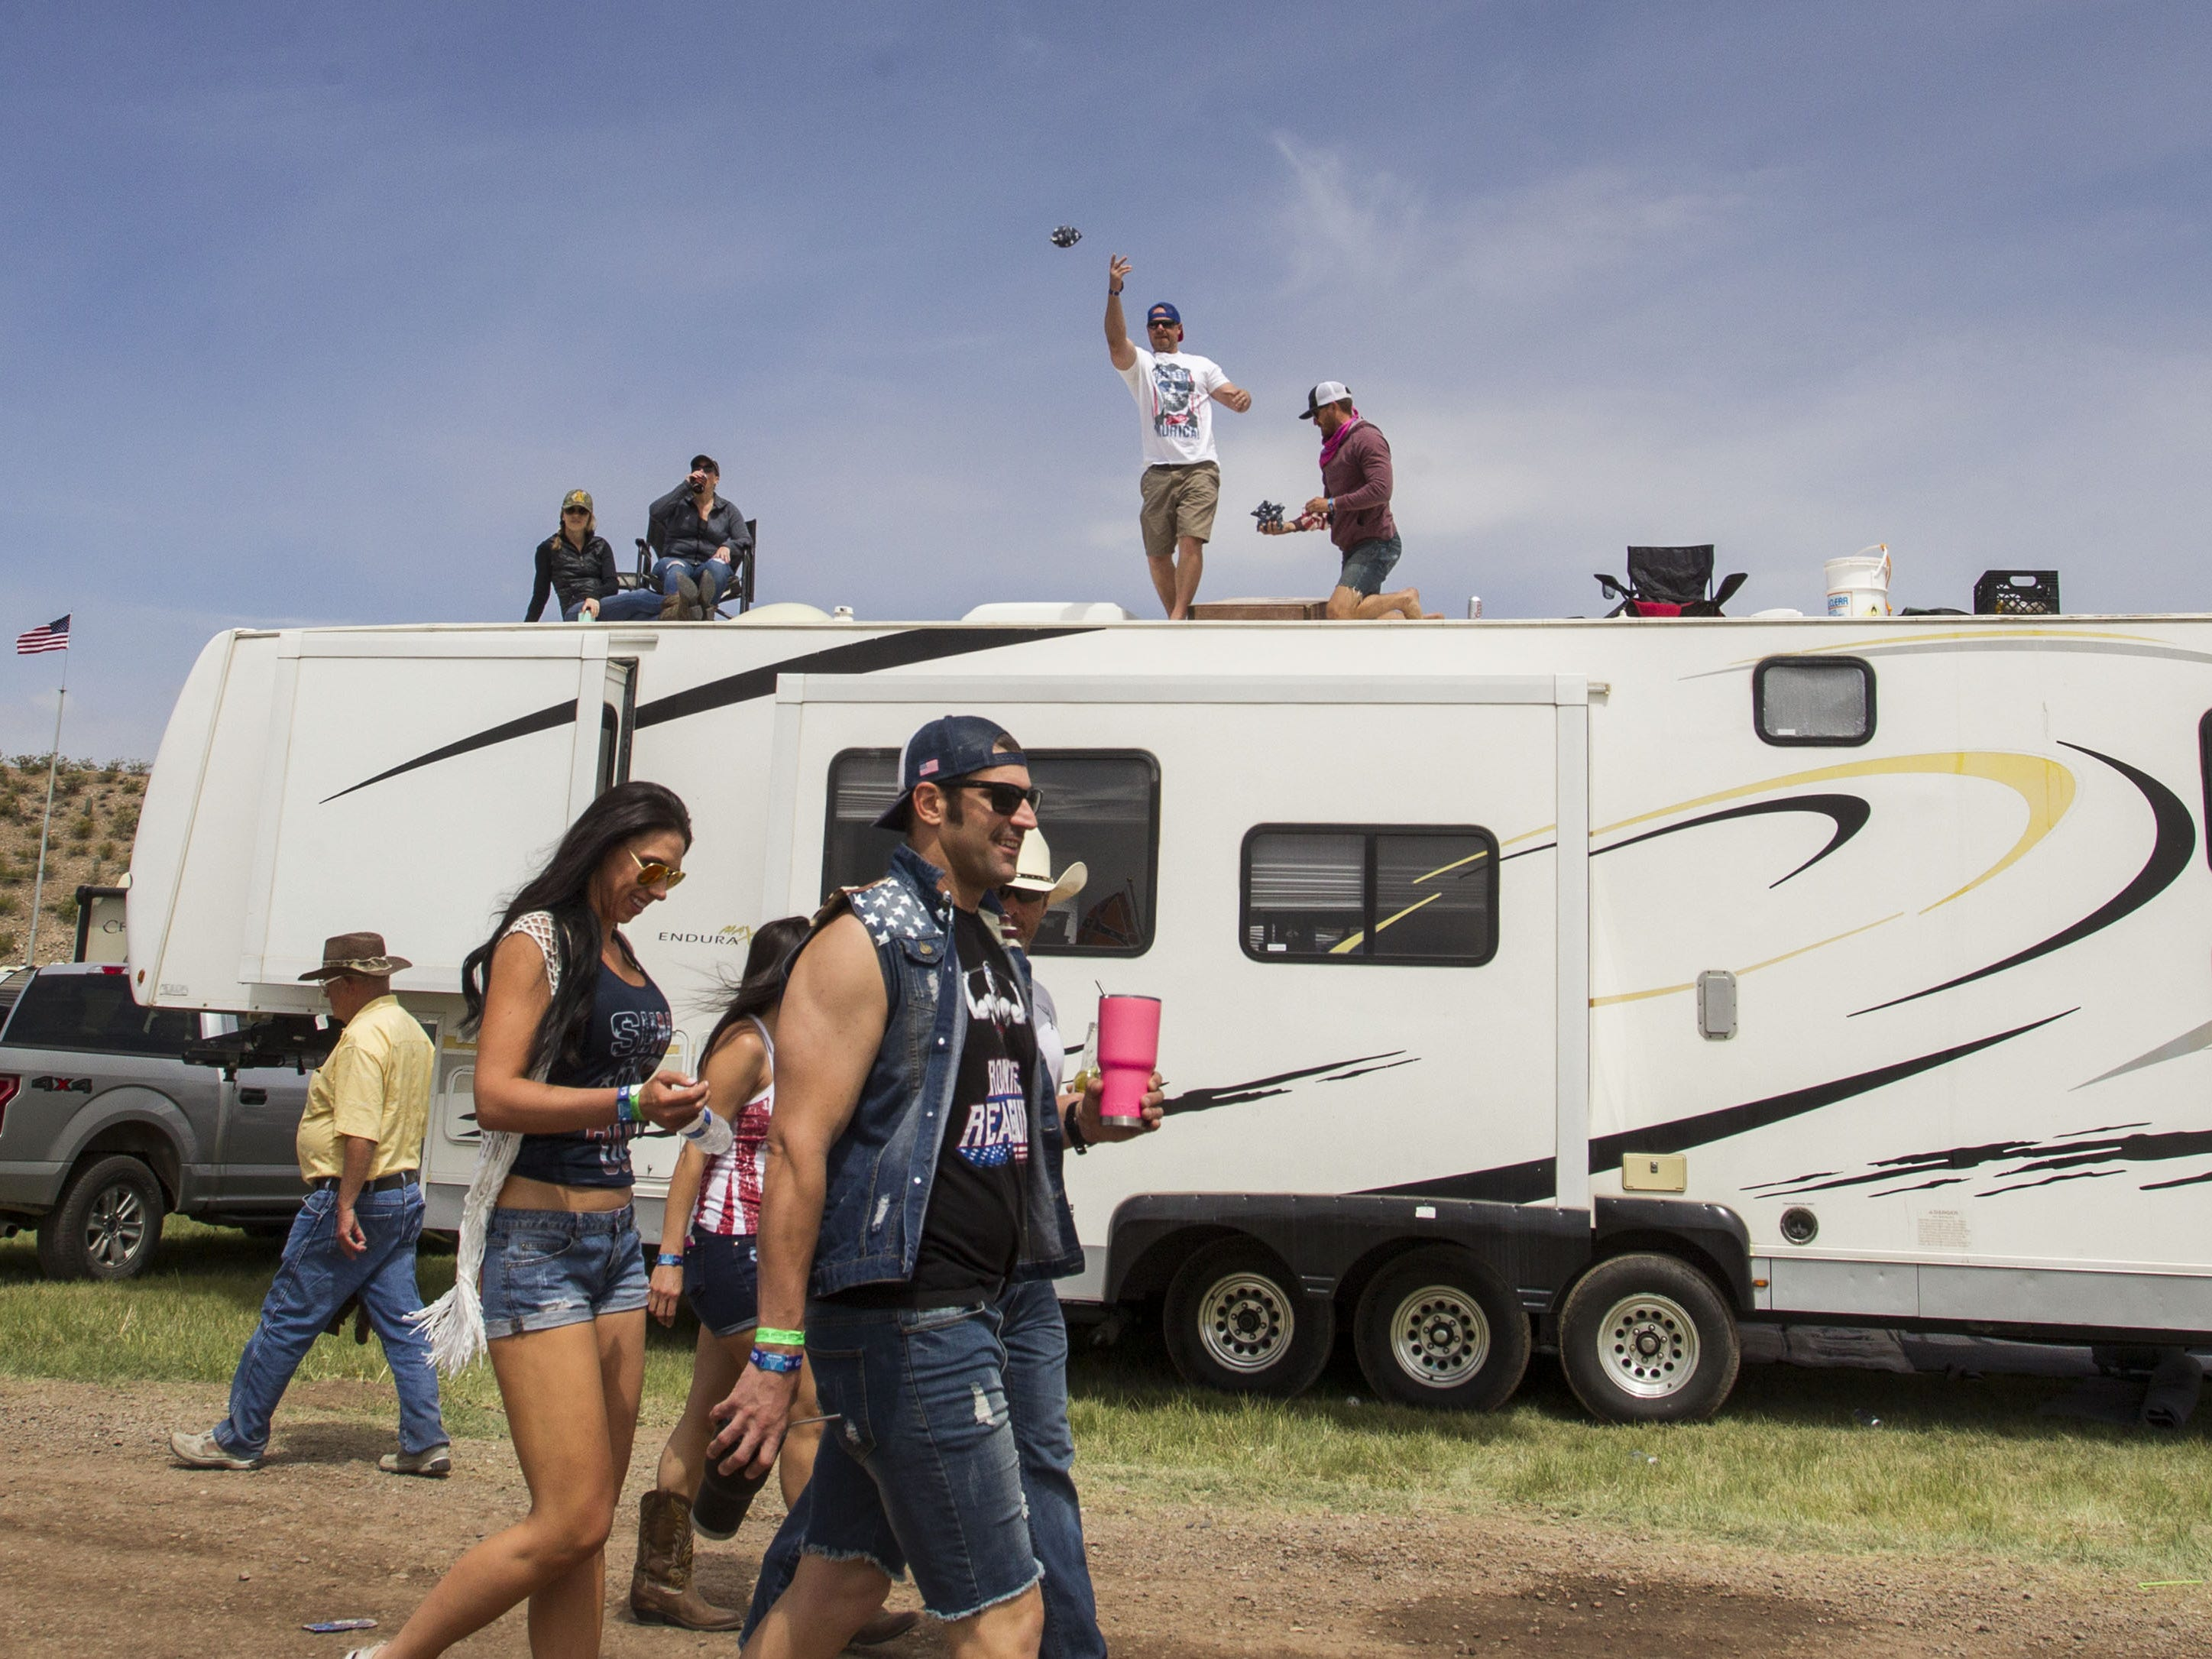 Party-goers play long toss cornhole off the top of their RV during Country Thunder Arizona Friday, April 12, 2019, in Florence, Ariz.